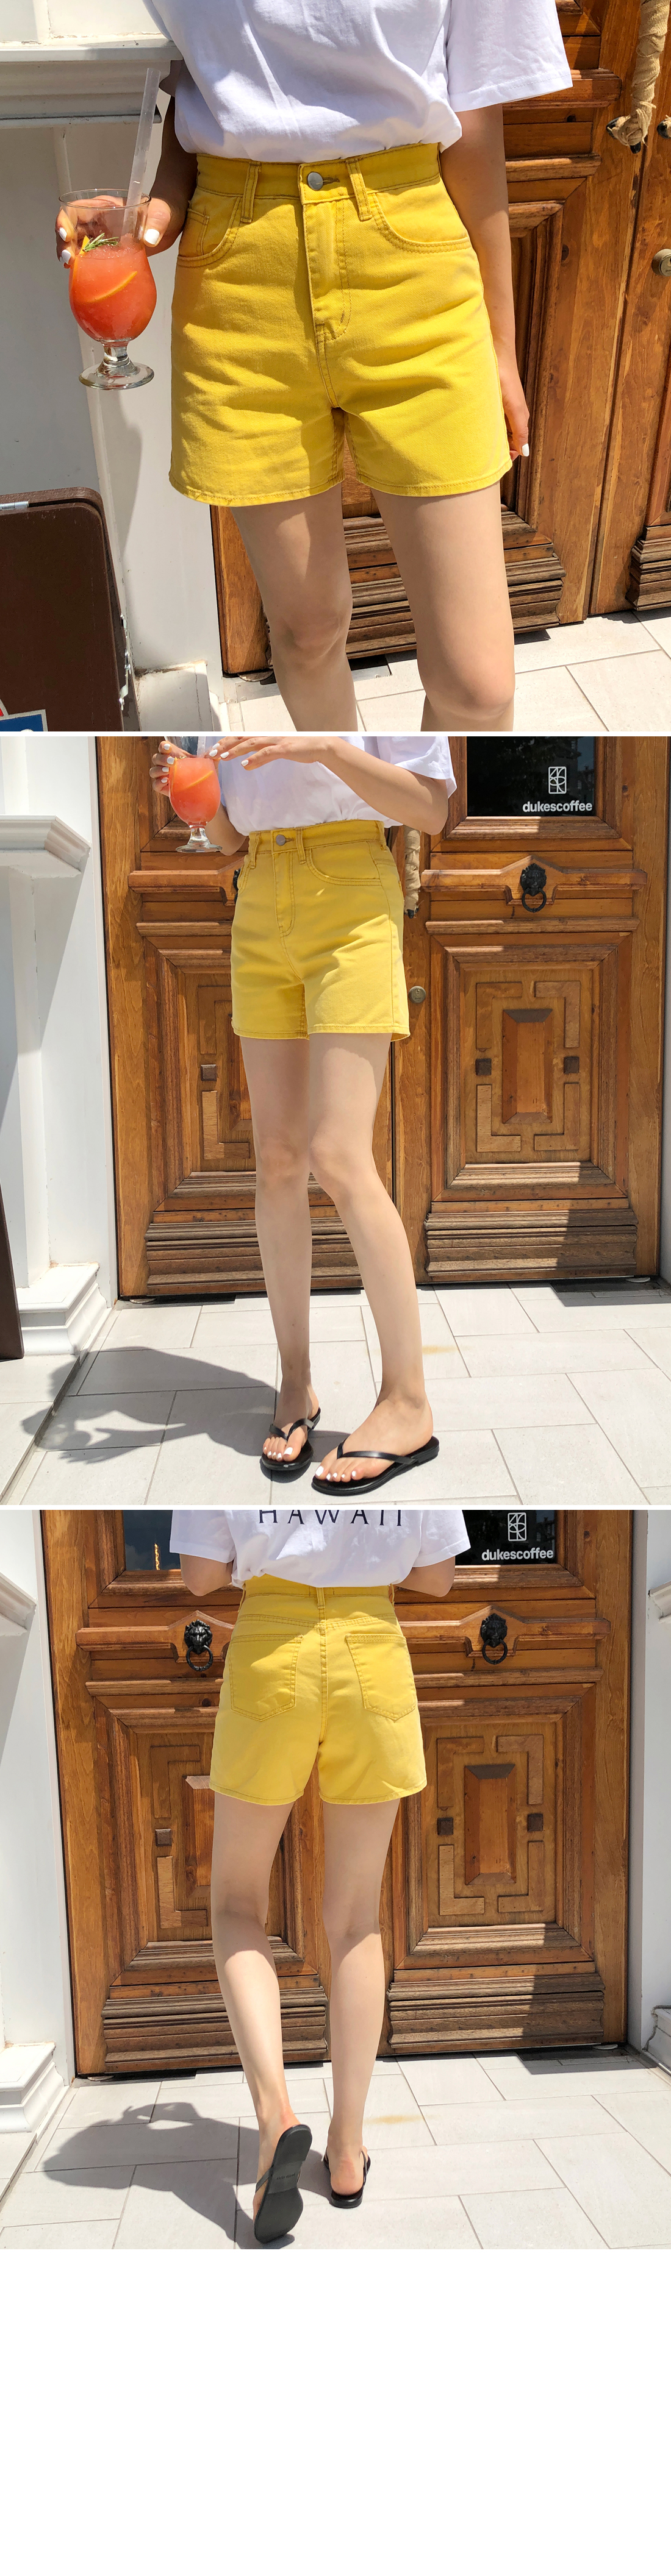 Dying color wash high waist 3 part shorts